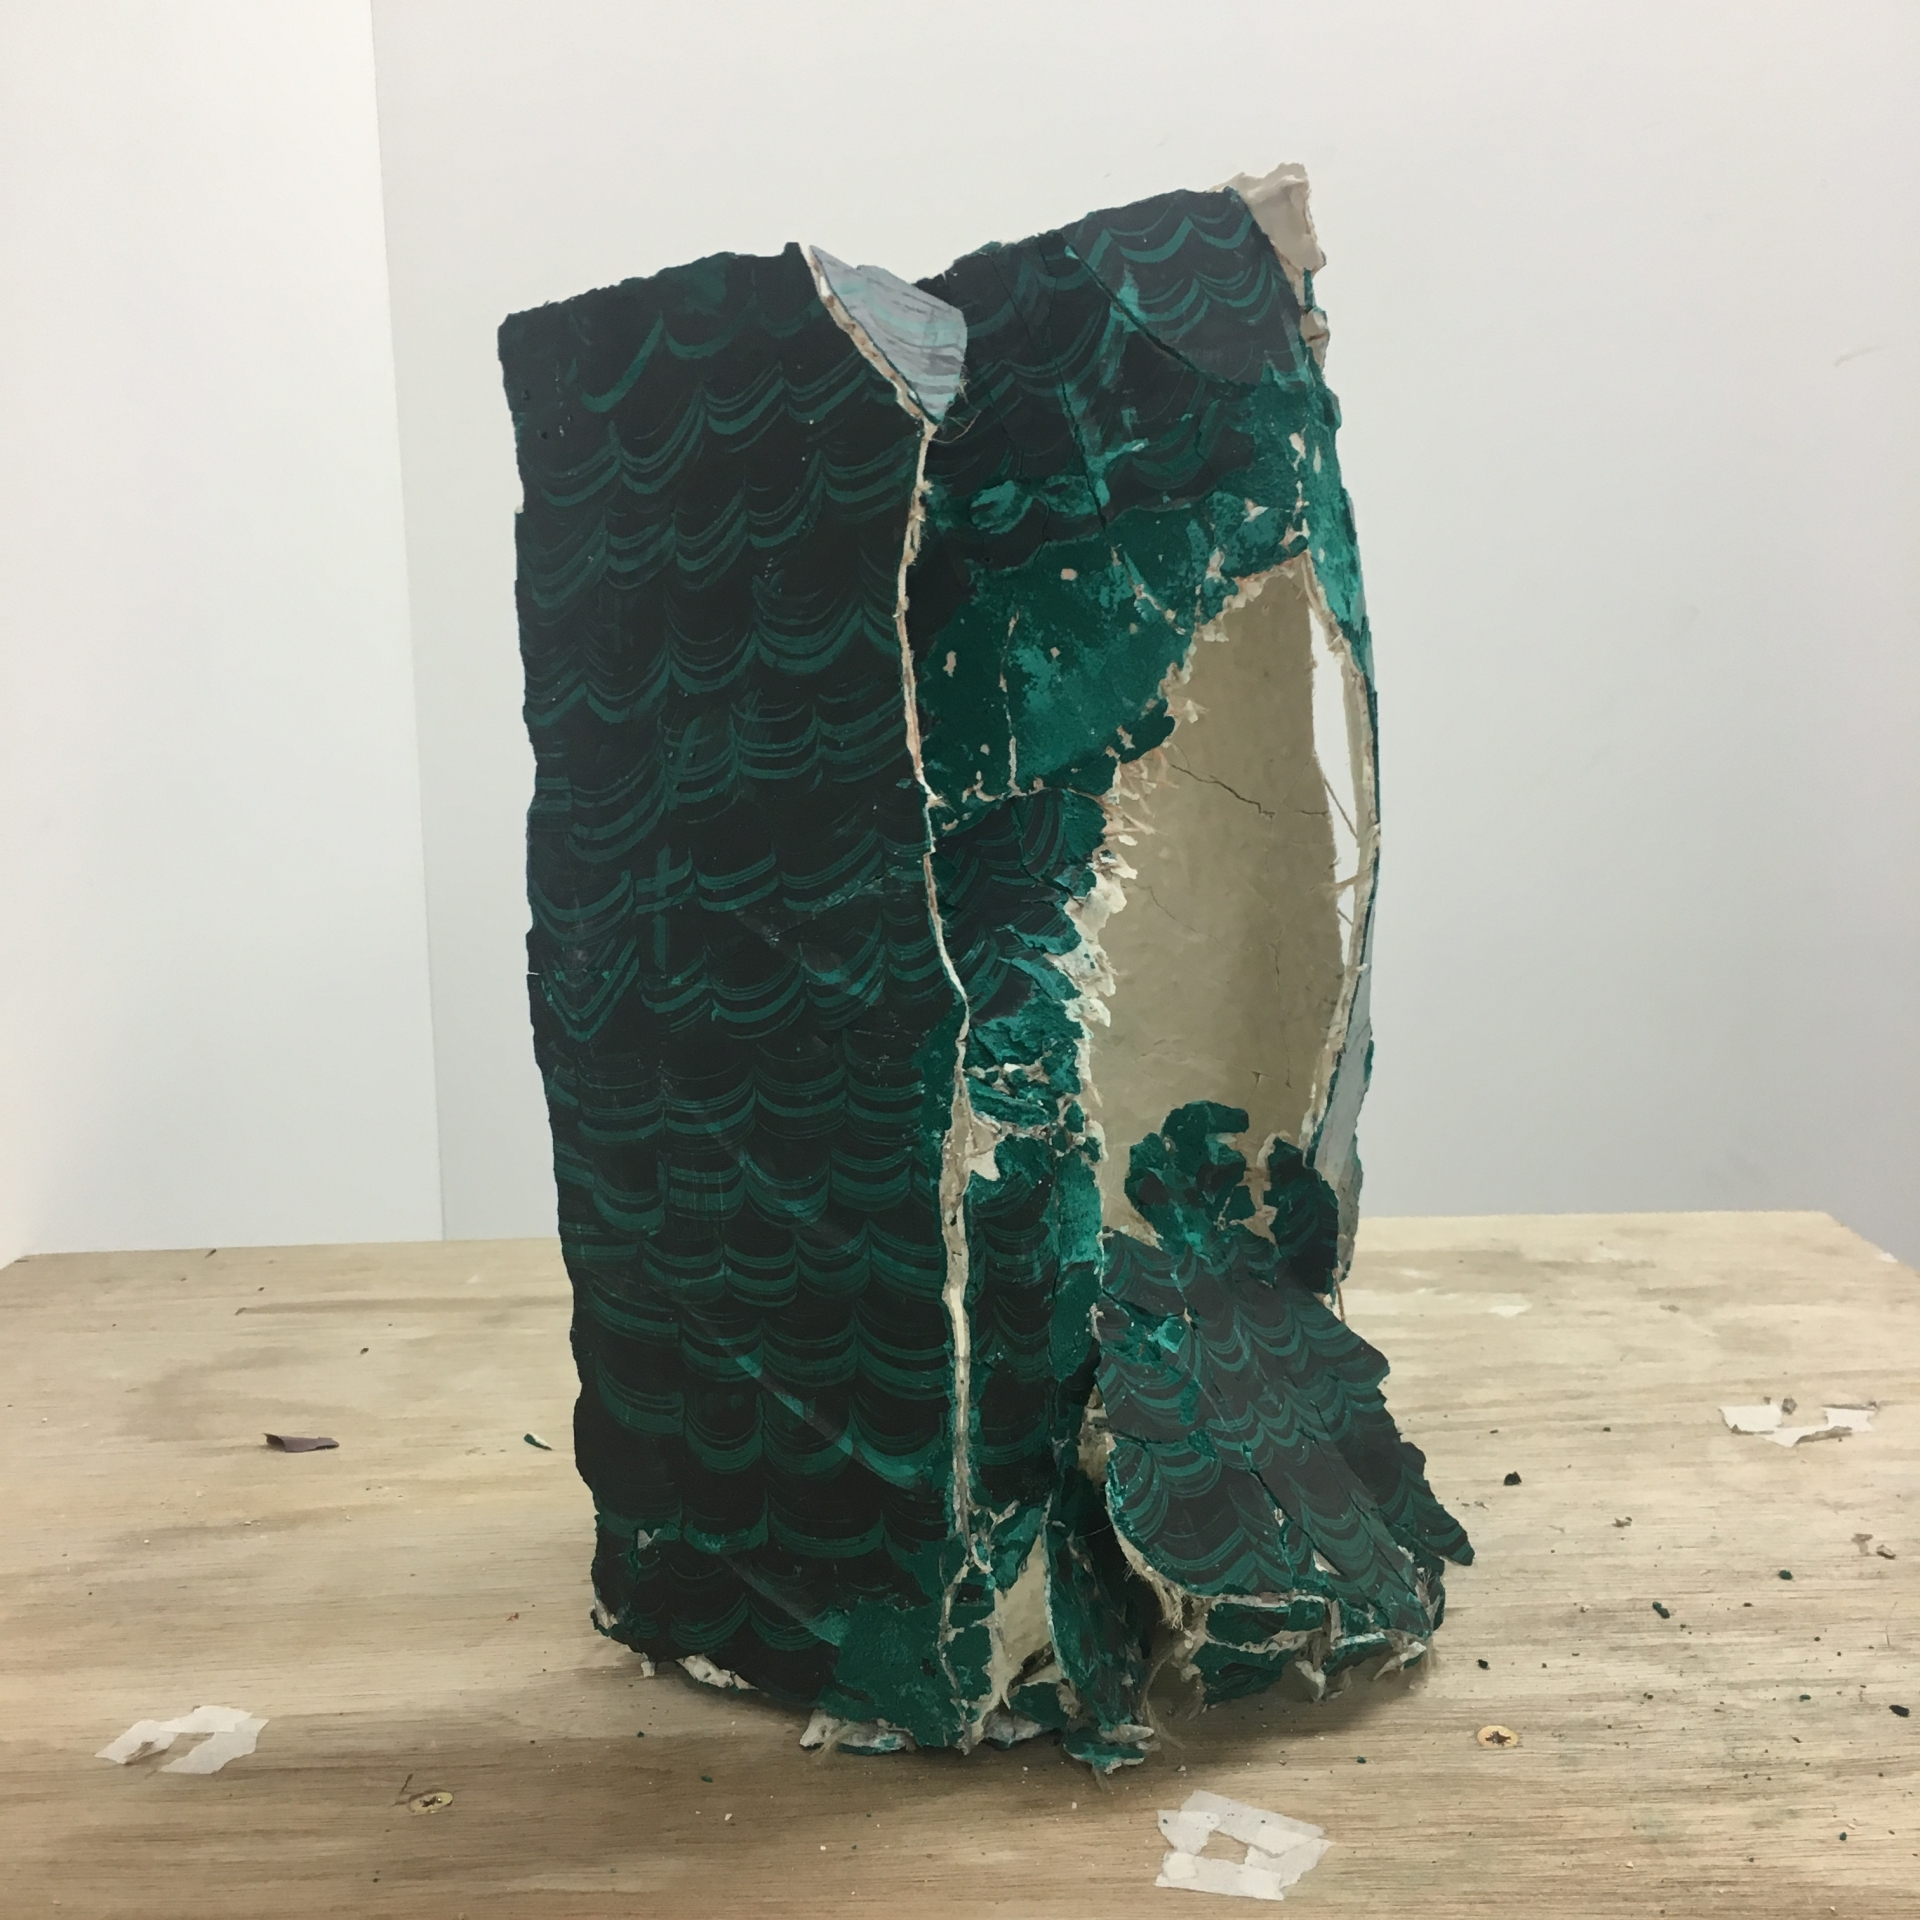 Wave From The Dragons Gut 2017 ////// polymer, plaster, pigments, oil, wax ////// 42cm x 34cm